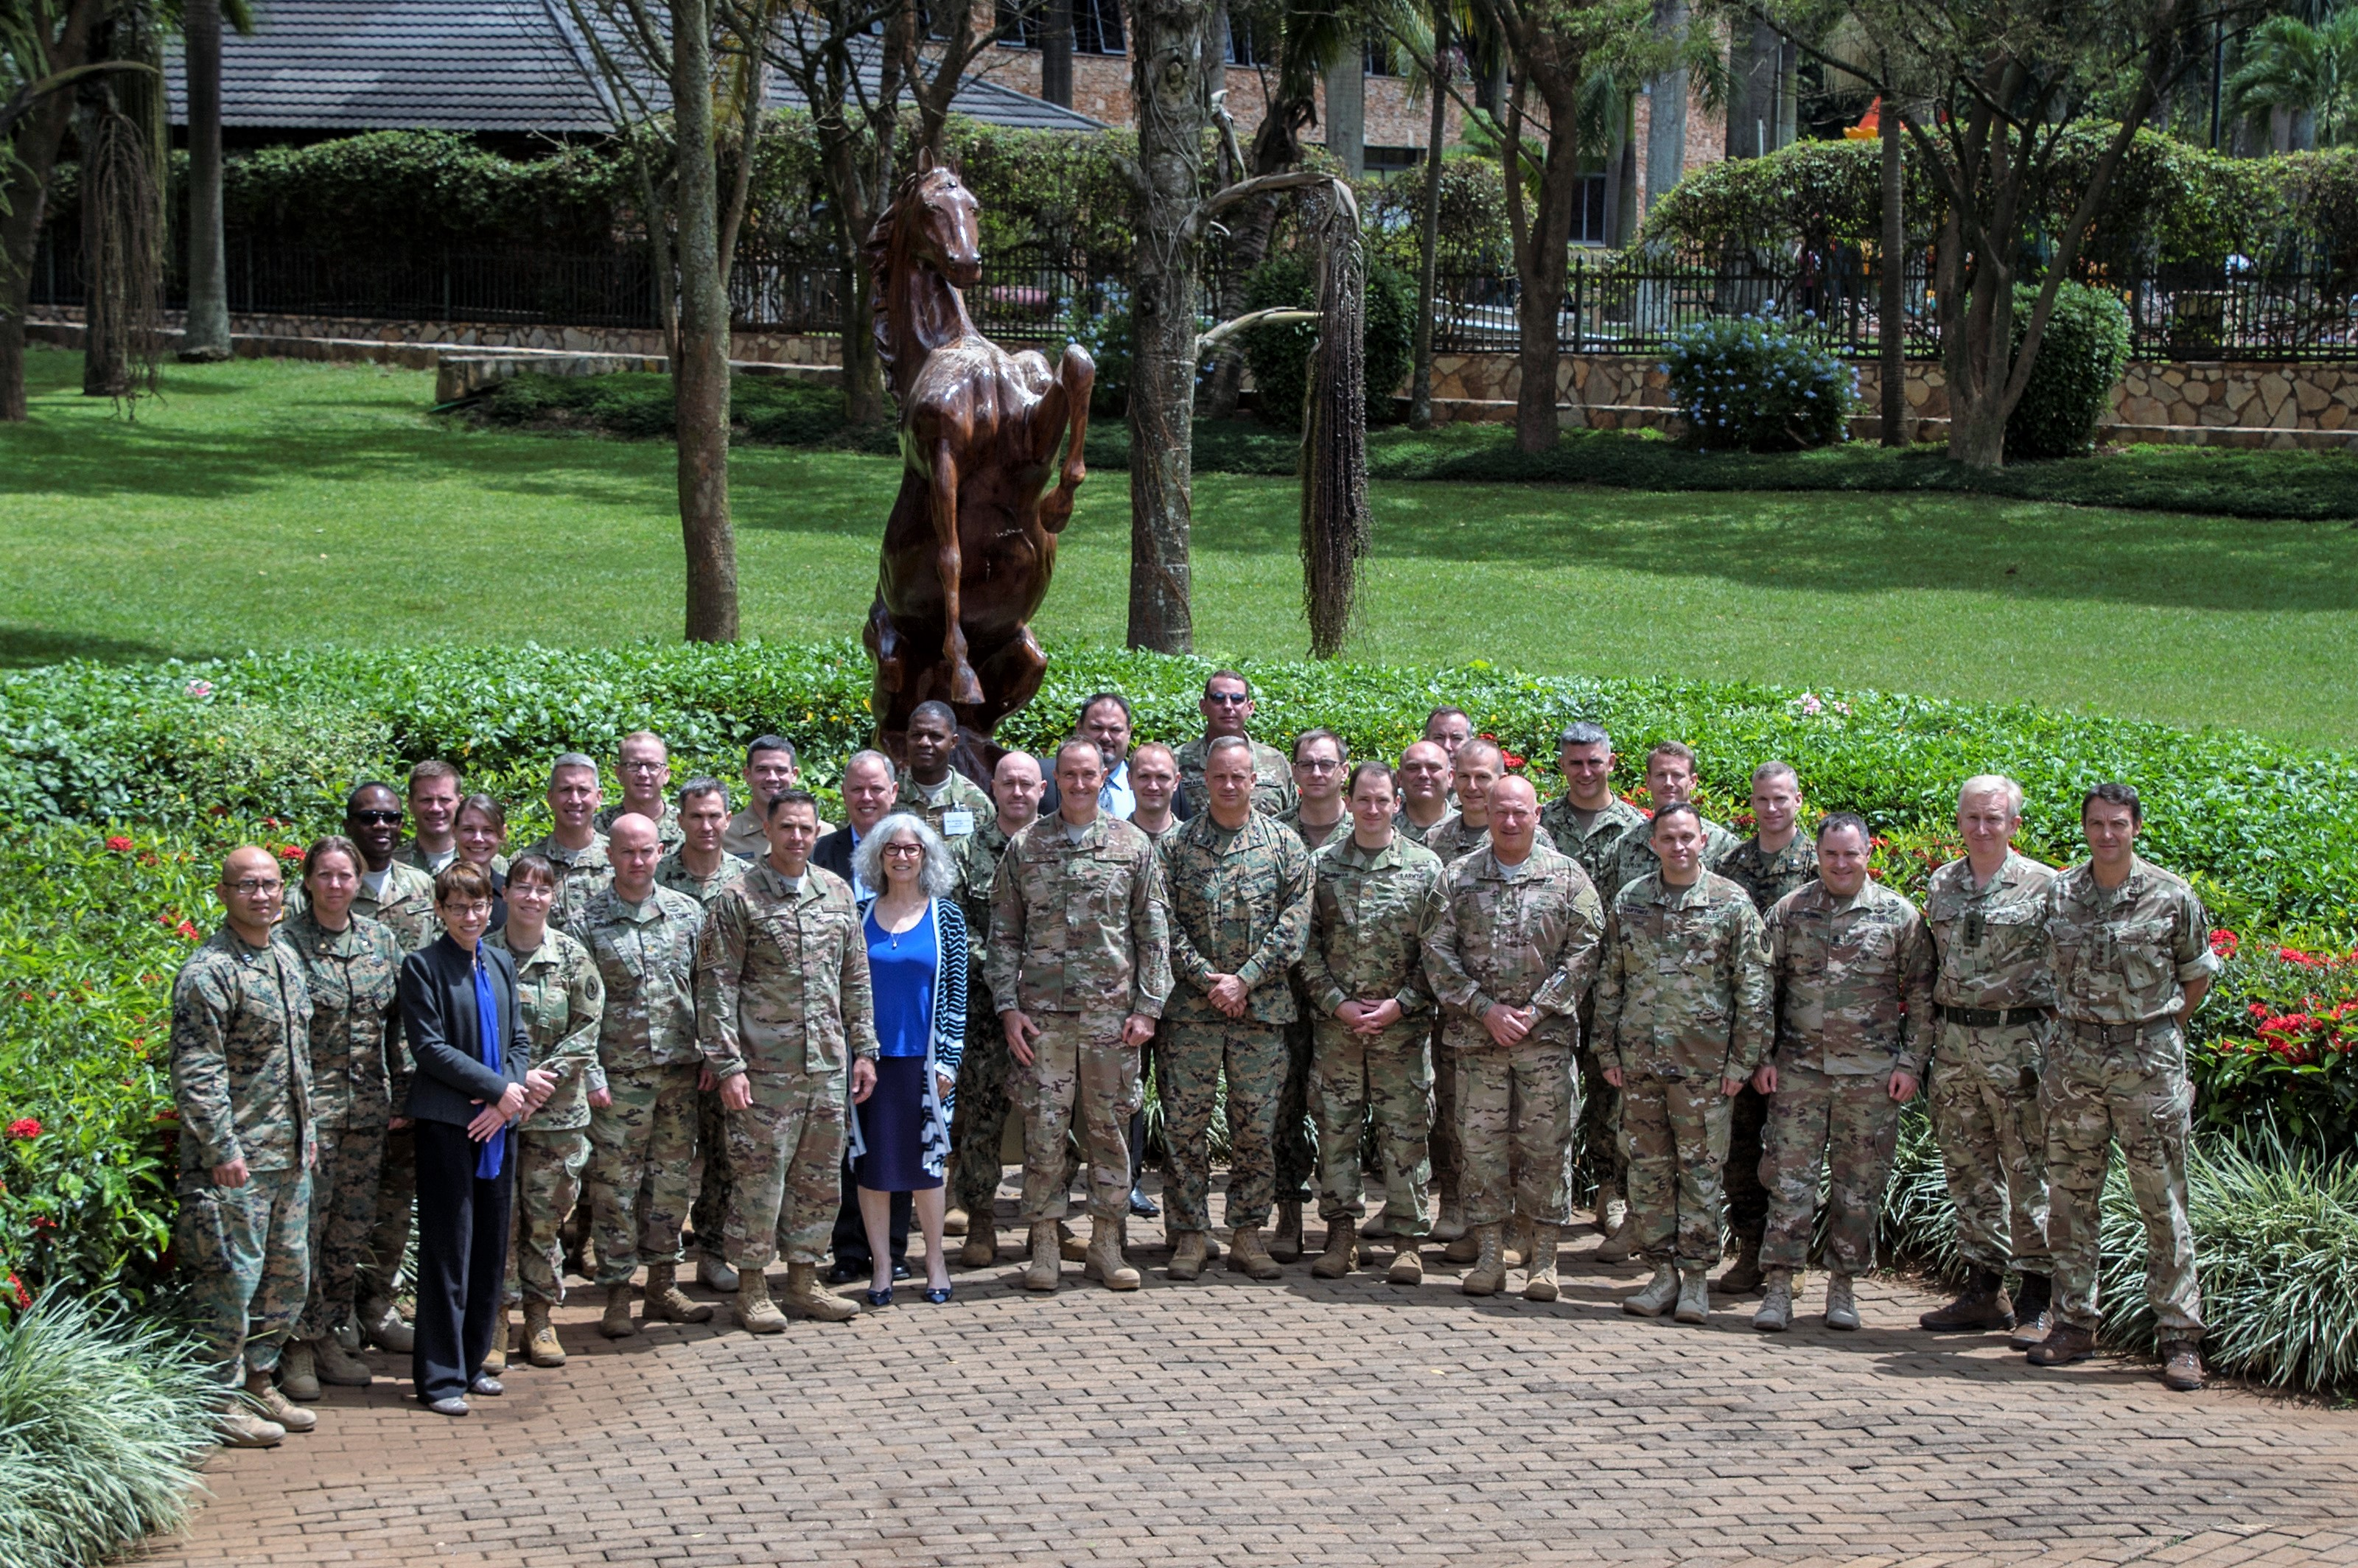 Combined Joint Task Force-Horn of Africa members gather for the 2017 East African Senior Defense Official/Defense Attaché Conference in Kampala, Uganda, to discuss regional issues of East Africa and address threat mitigation options to counter improvised explosive devices, Oct. 17, 2017. Subject matter experts from a variety of government agencies discussed military partnership opportunities that enhance security and stability throughout East Africa. (U.S. Air National Guard photo by Tech. Sgt. Joe Harwood)